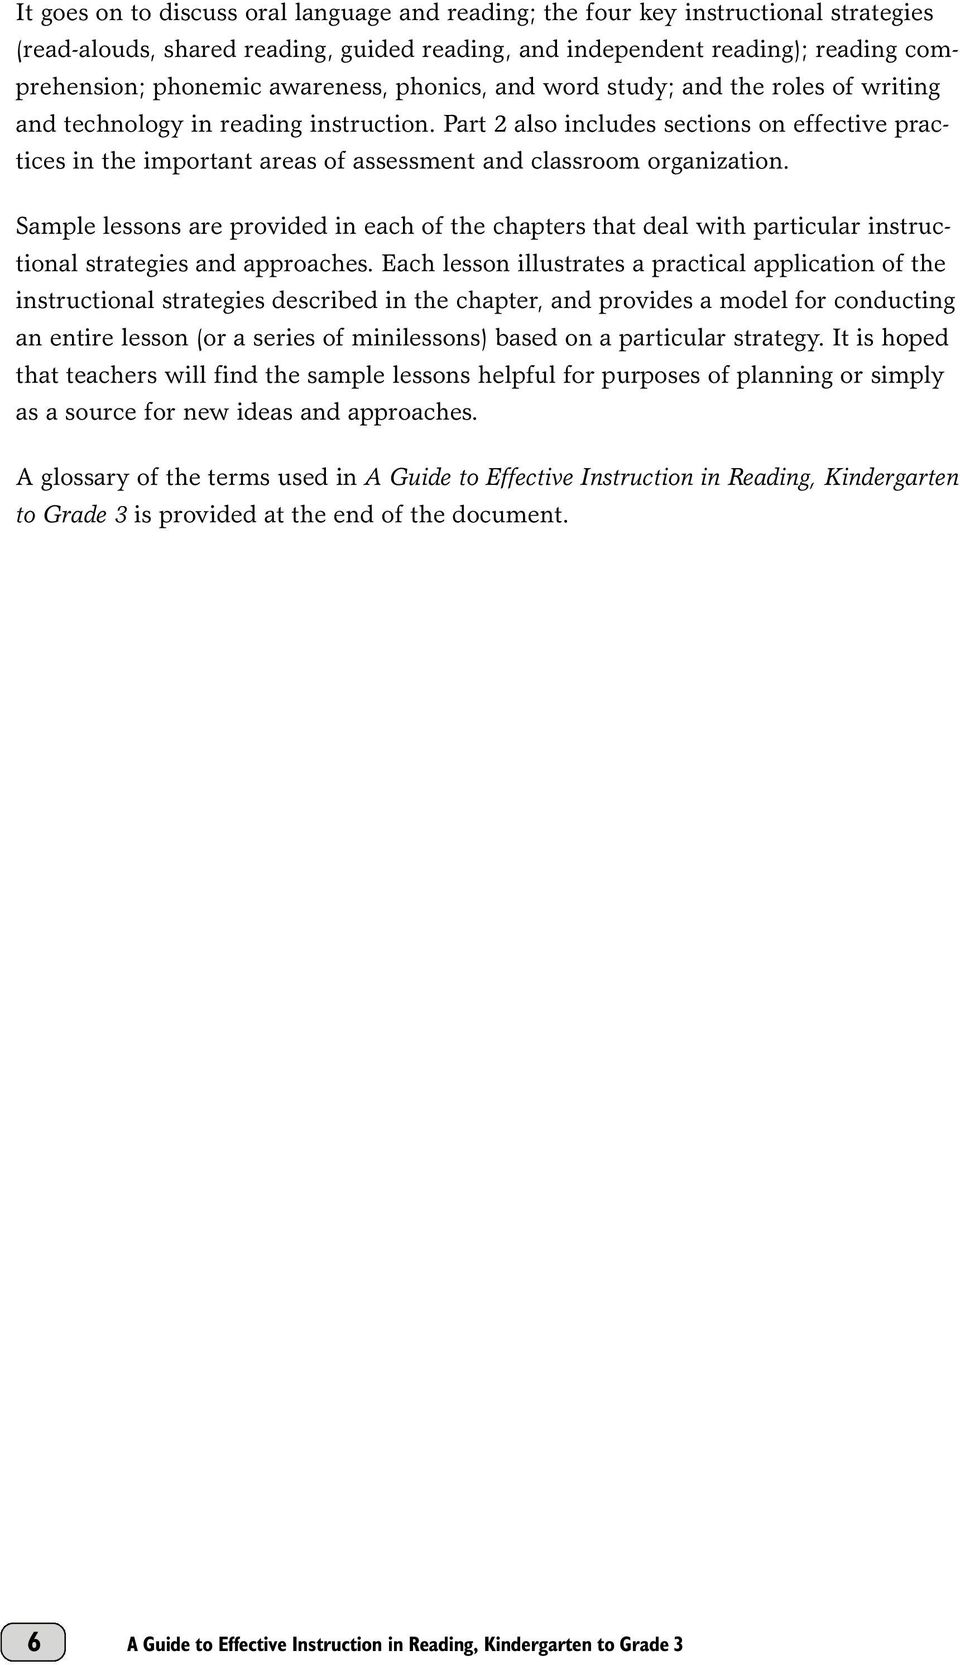 Part 2 also includes sections on effective practices in the important areas of assessment and classroom organization.